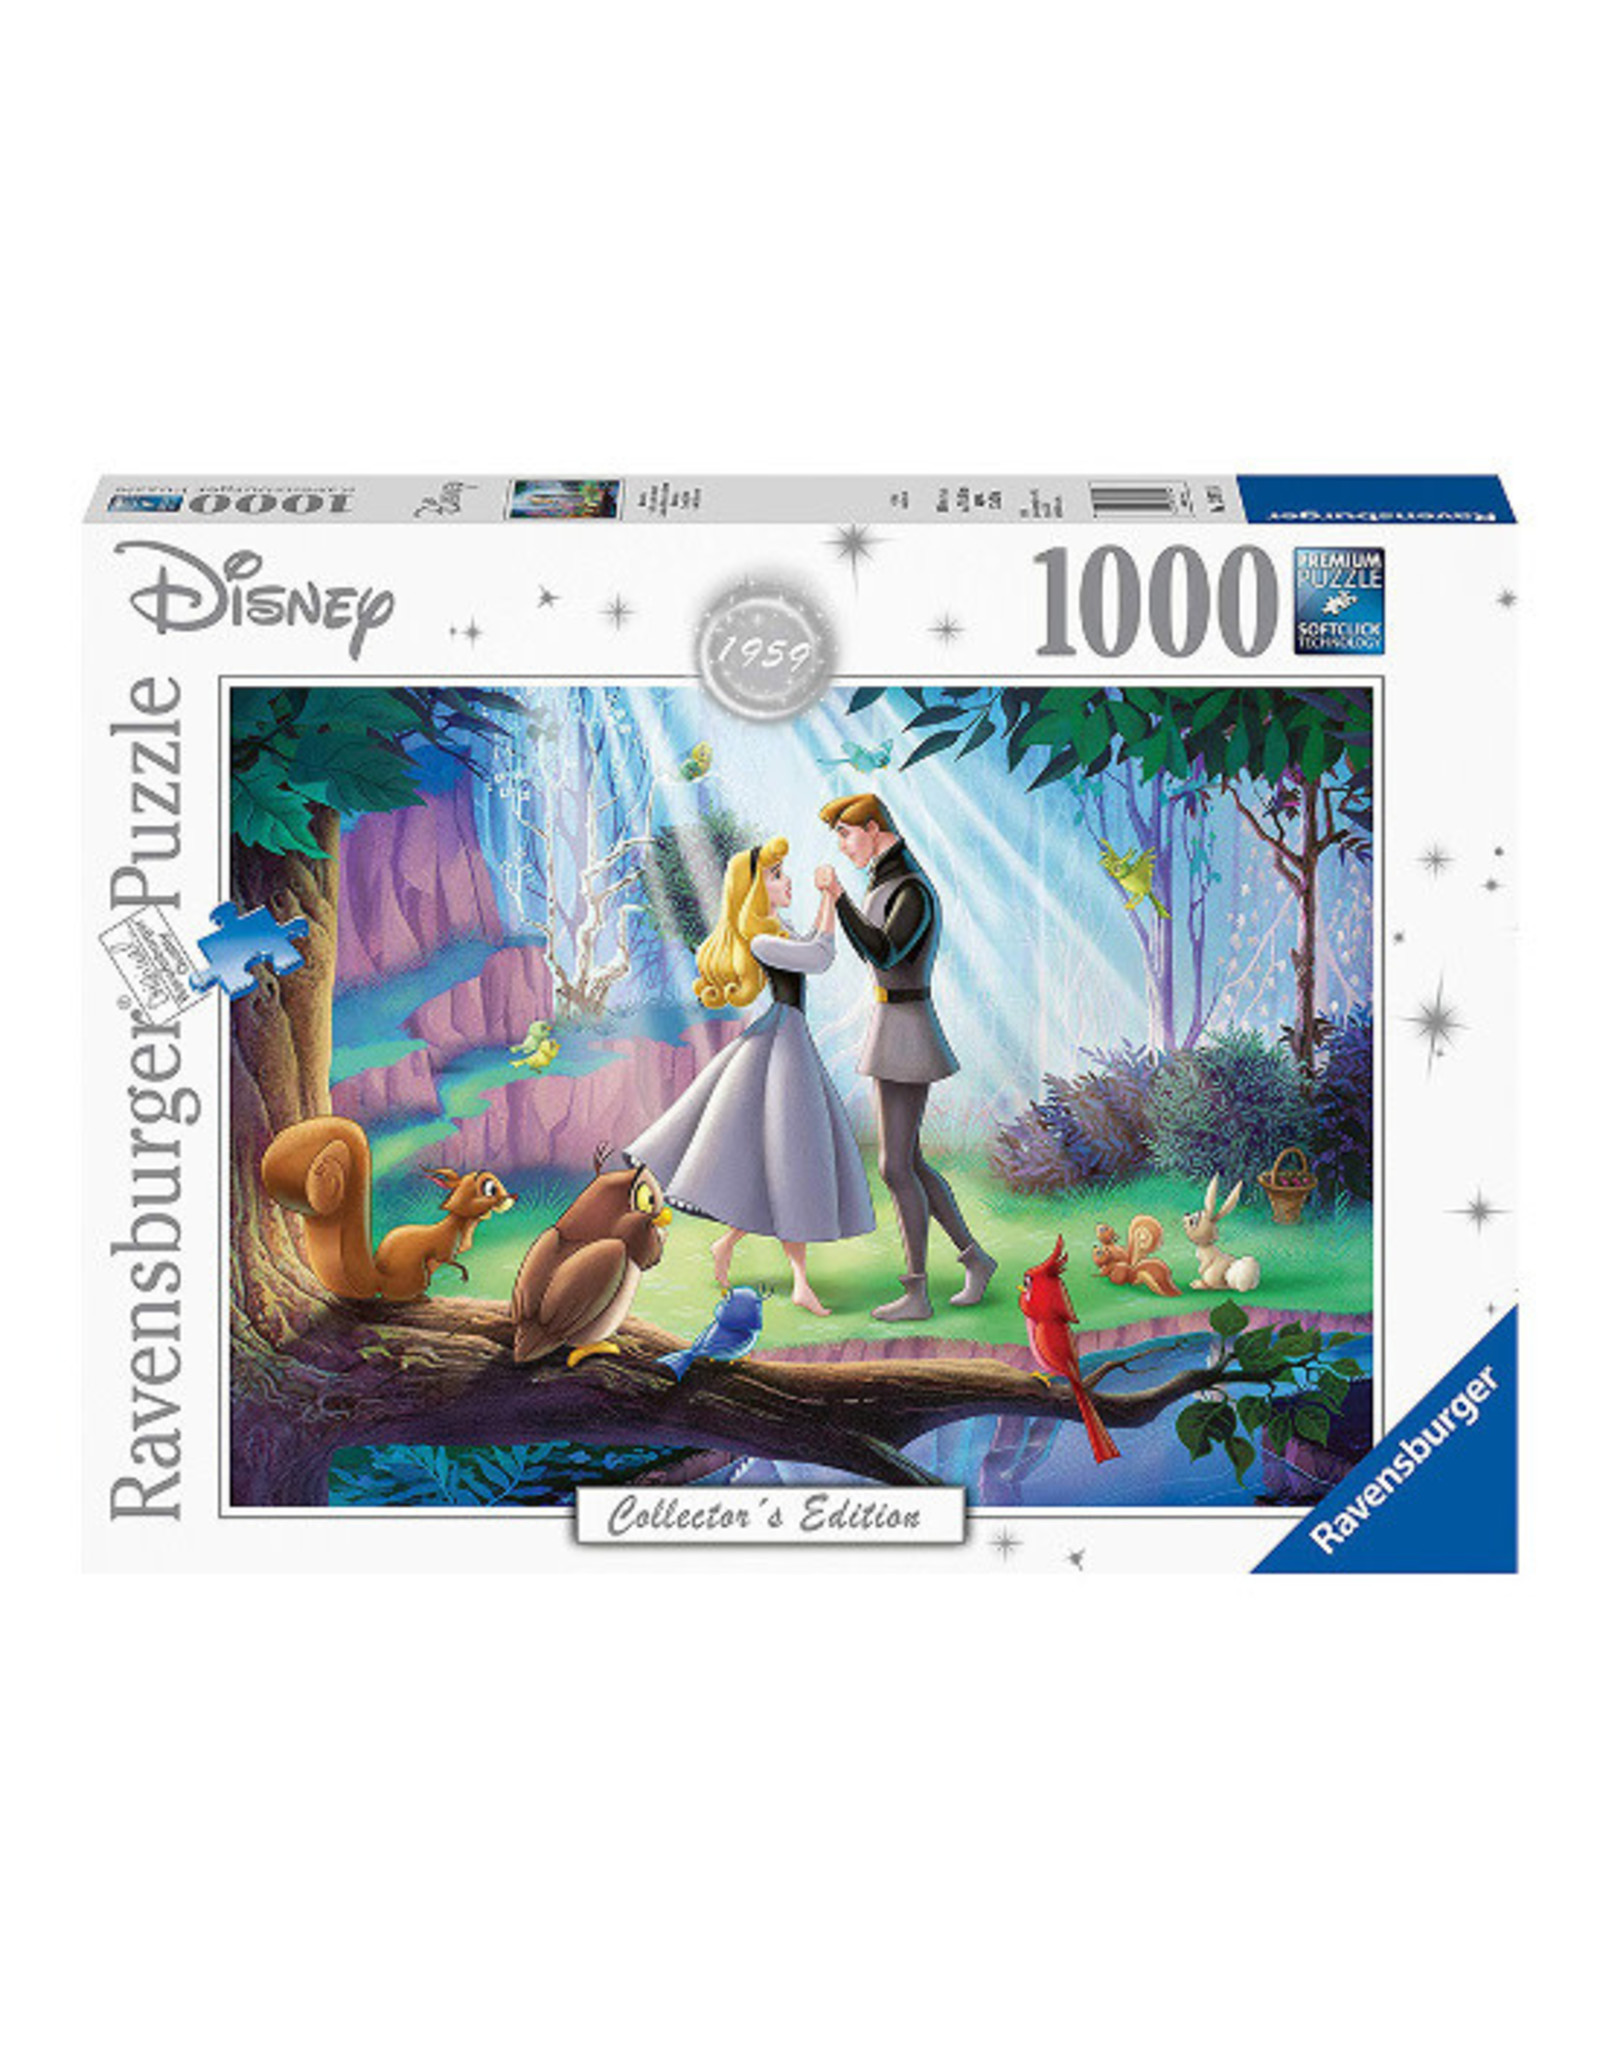 Ravensburger SLEEPING BEAUTY Puzzle 1000P - Collector's Edition